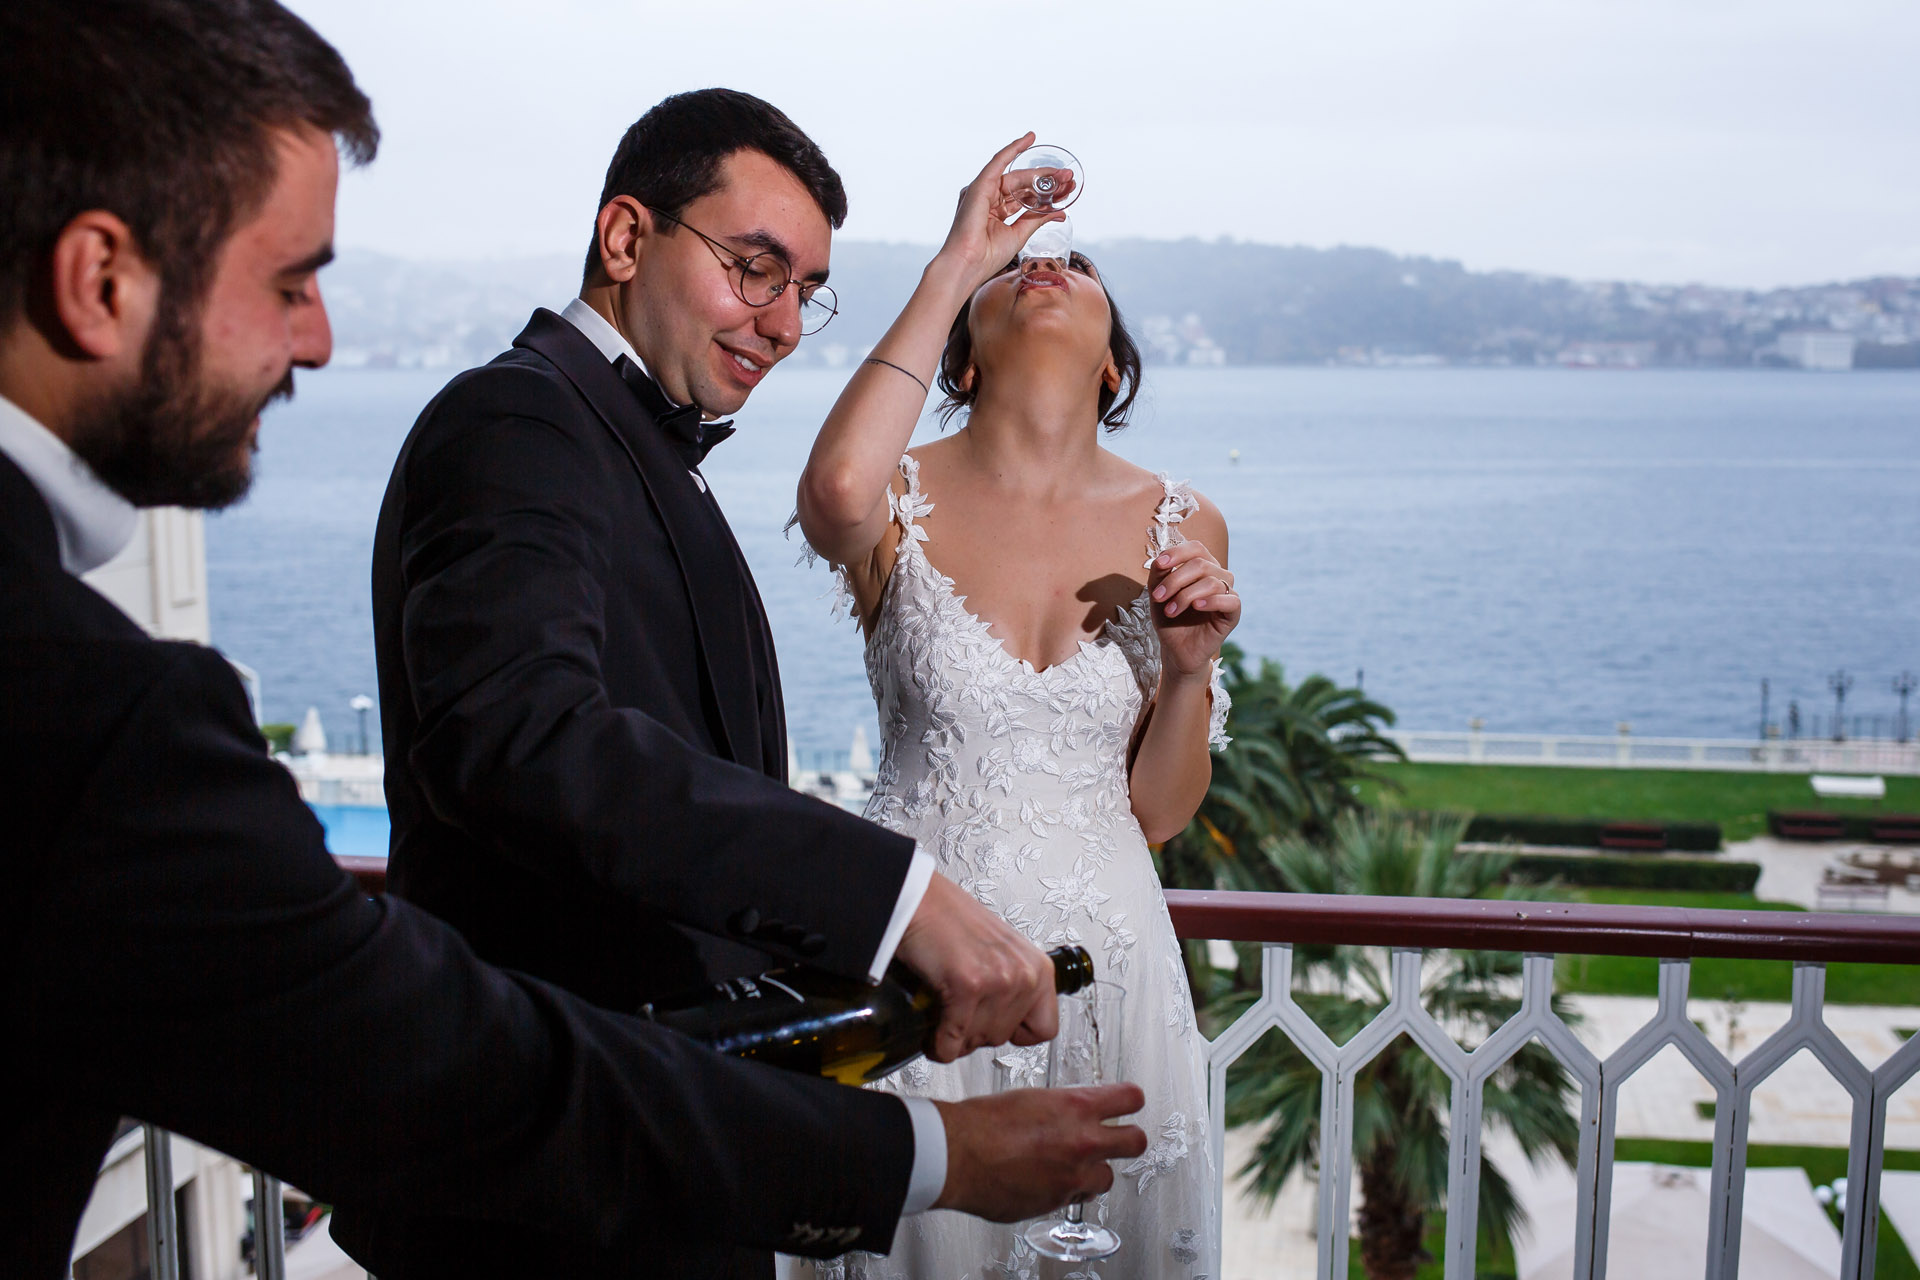 Wedding Pic at Ciragan Kempinski Palace Hotel | there was very little time left for the wedding ceremony